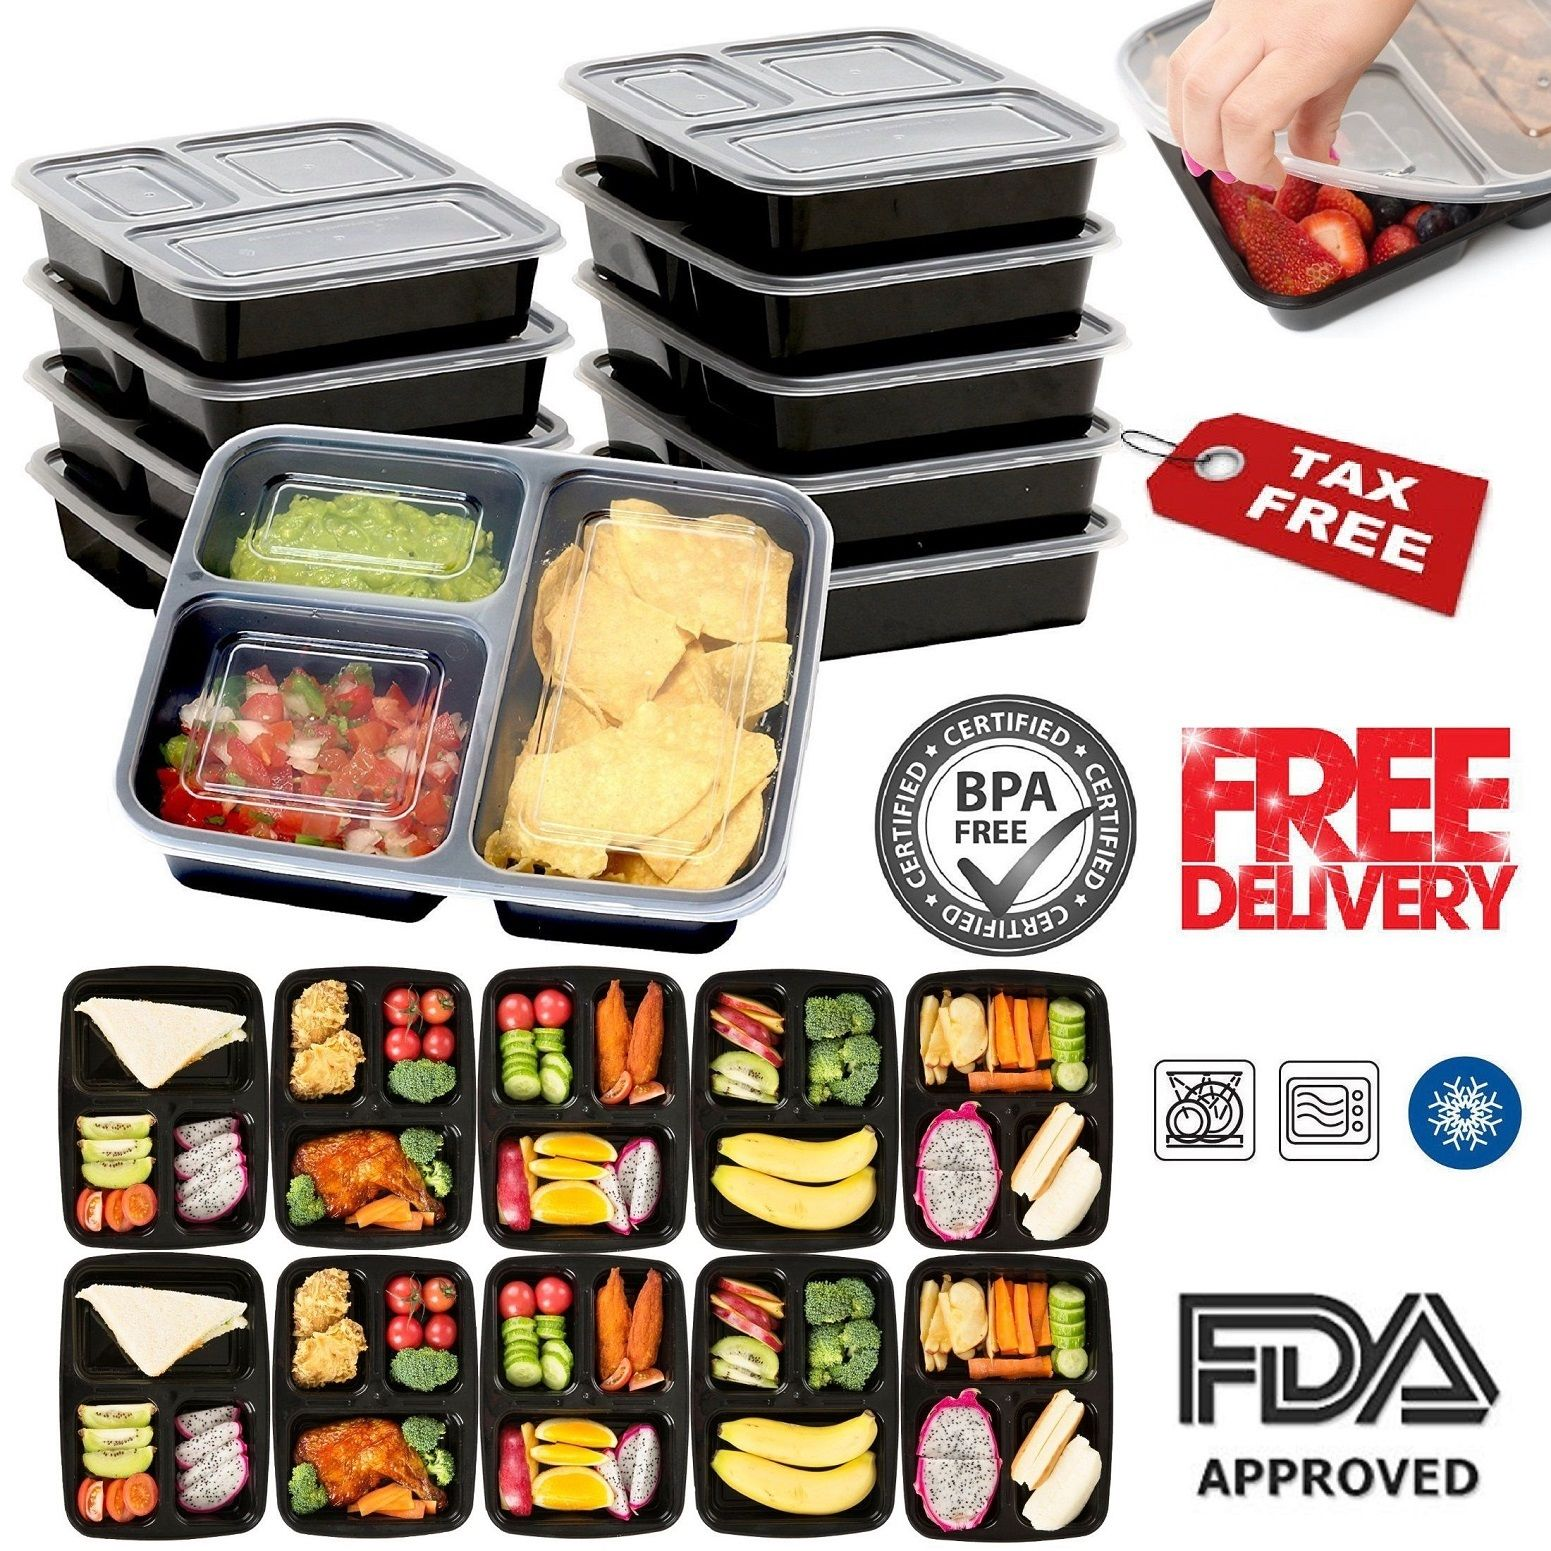 10 Meal Prep Containers Plastic Food Storage 3 Compartment Reusable Microwavable 1